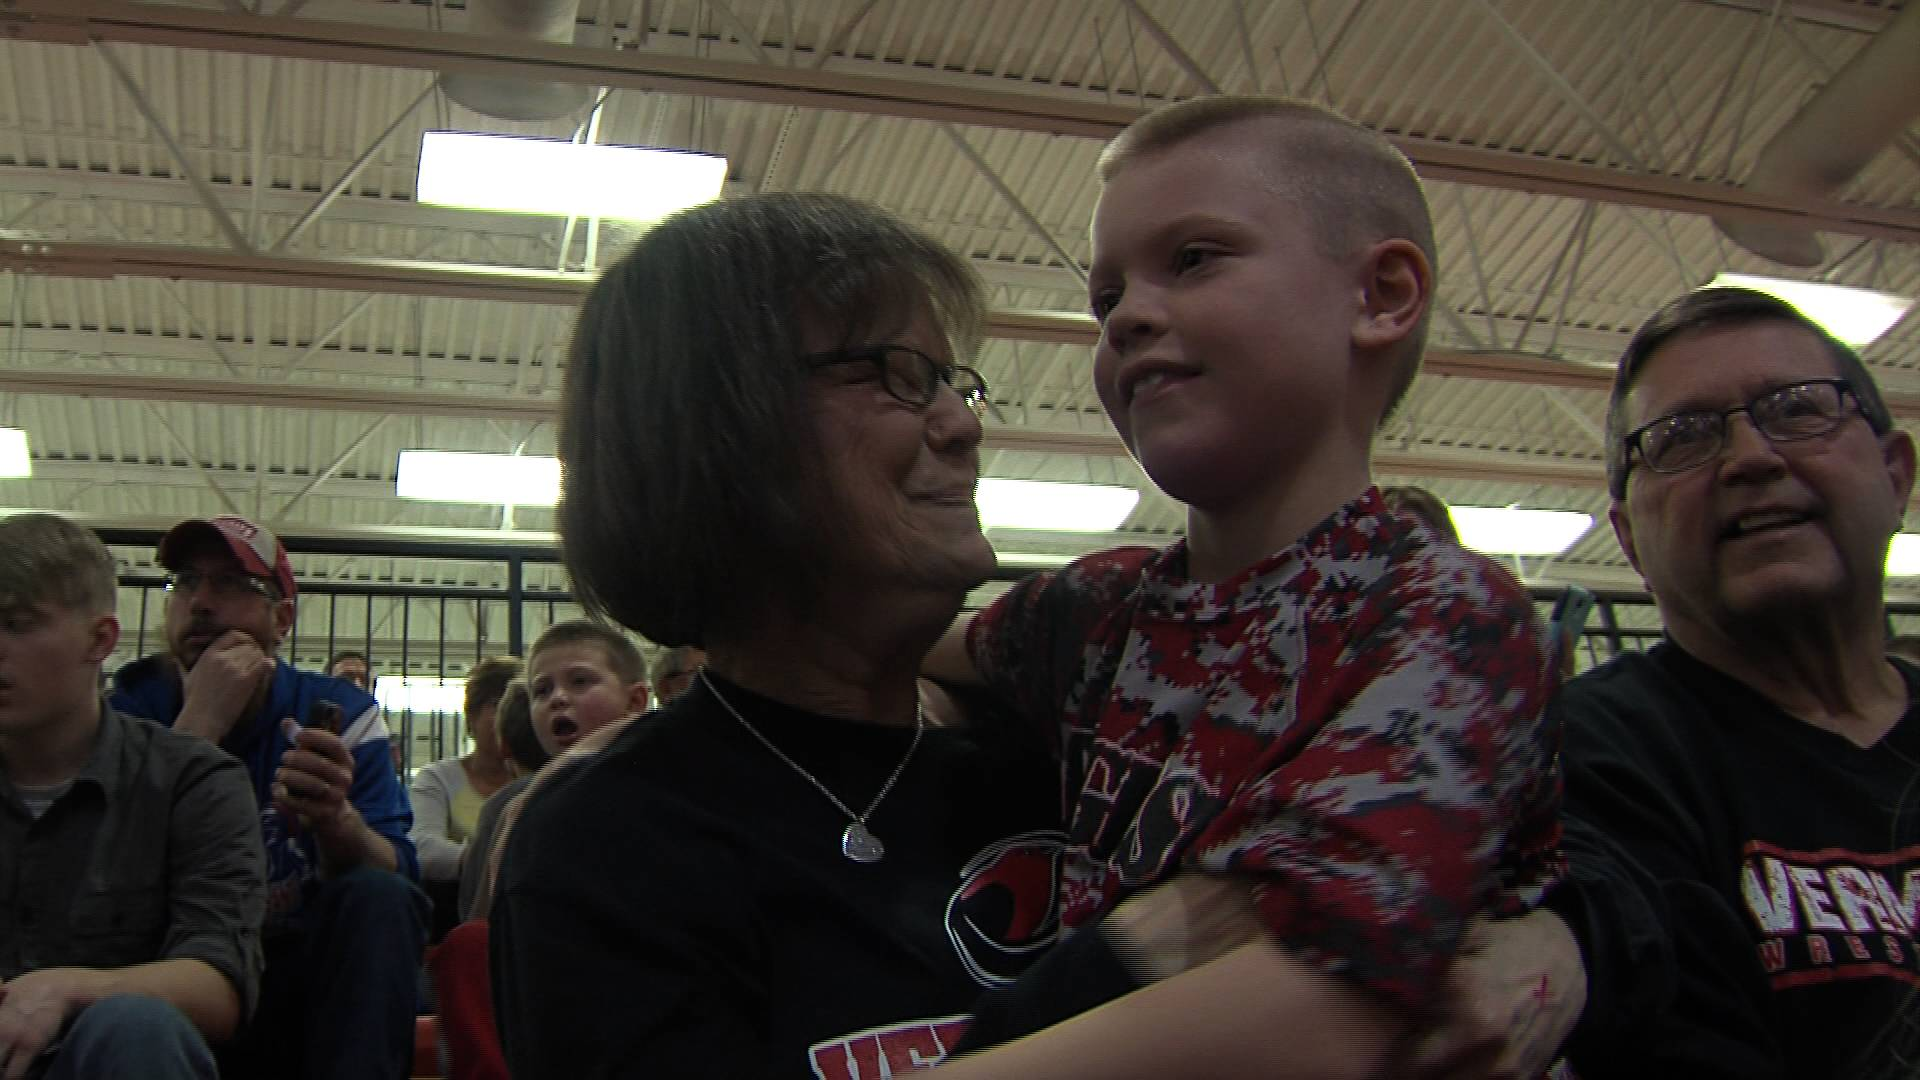 Jenny Peterson hugs her grandson Connor at a wrestling tournament